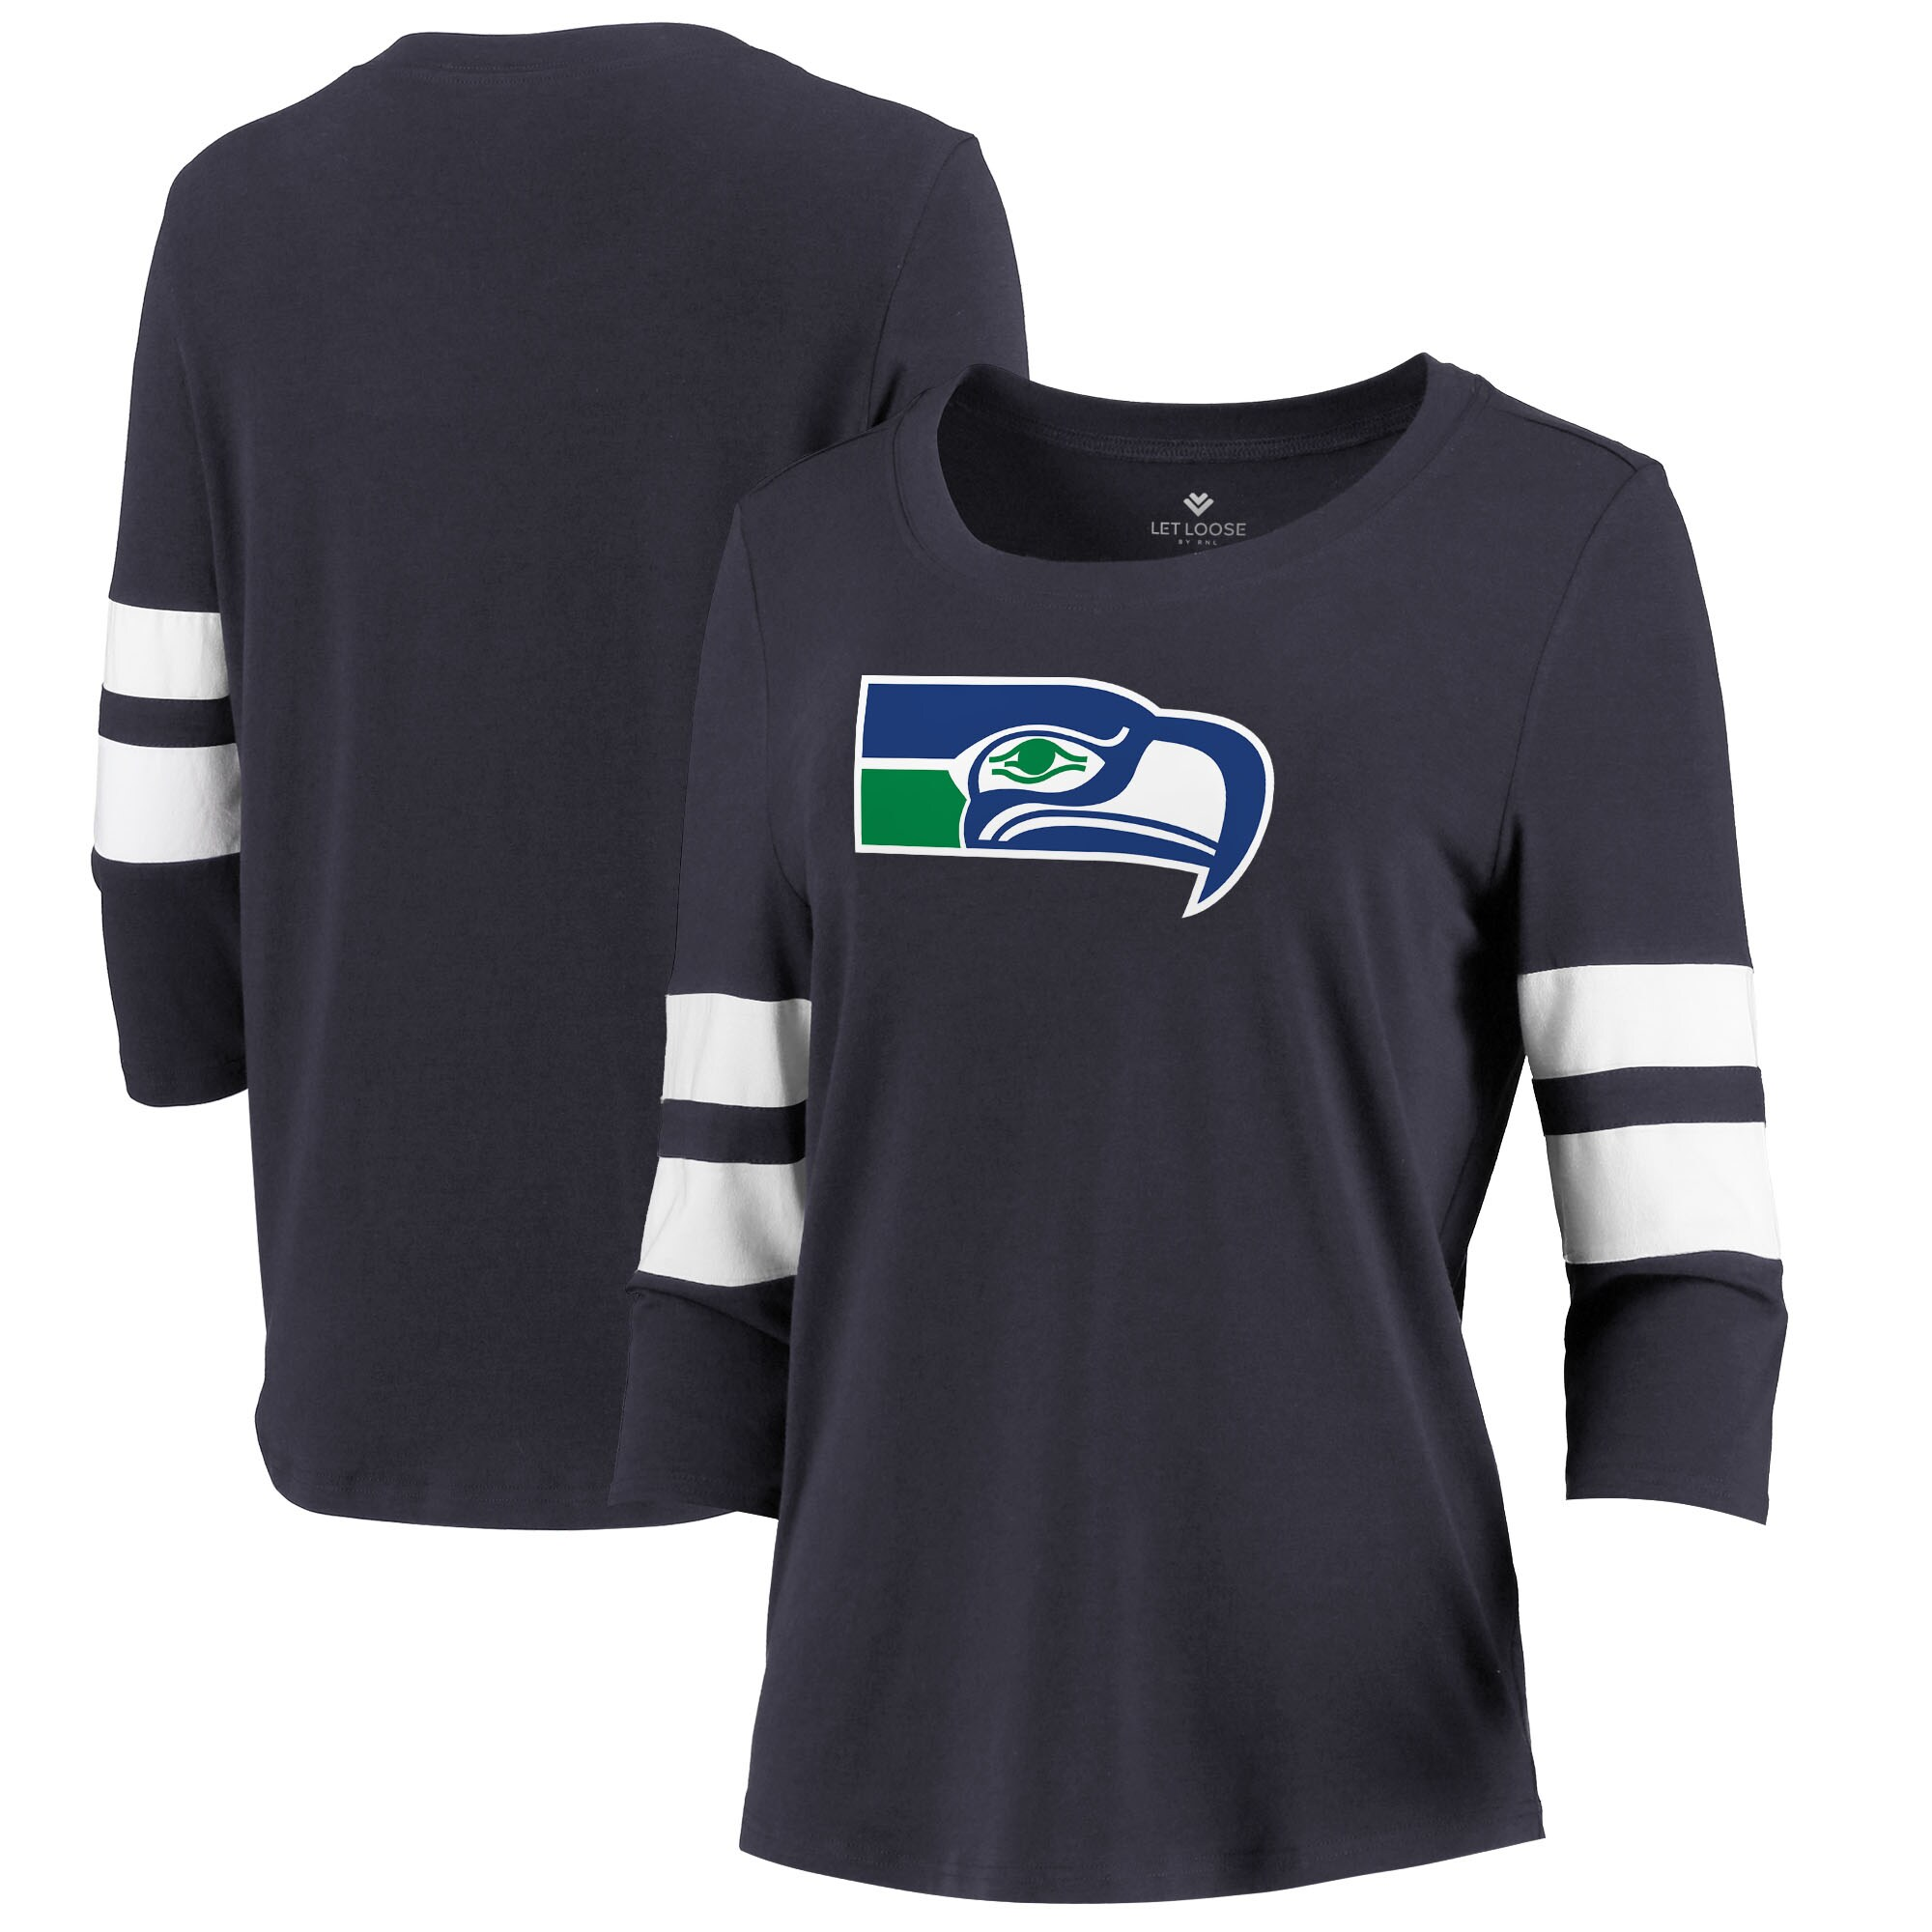 Seattle Seahawks Let Loose by RNL Women's Team Logo Stripe Tri-Blend 3/4 Sleeve T-Shirt - College Navy